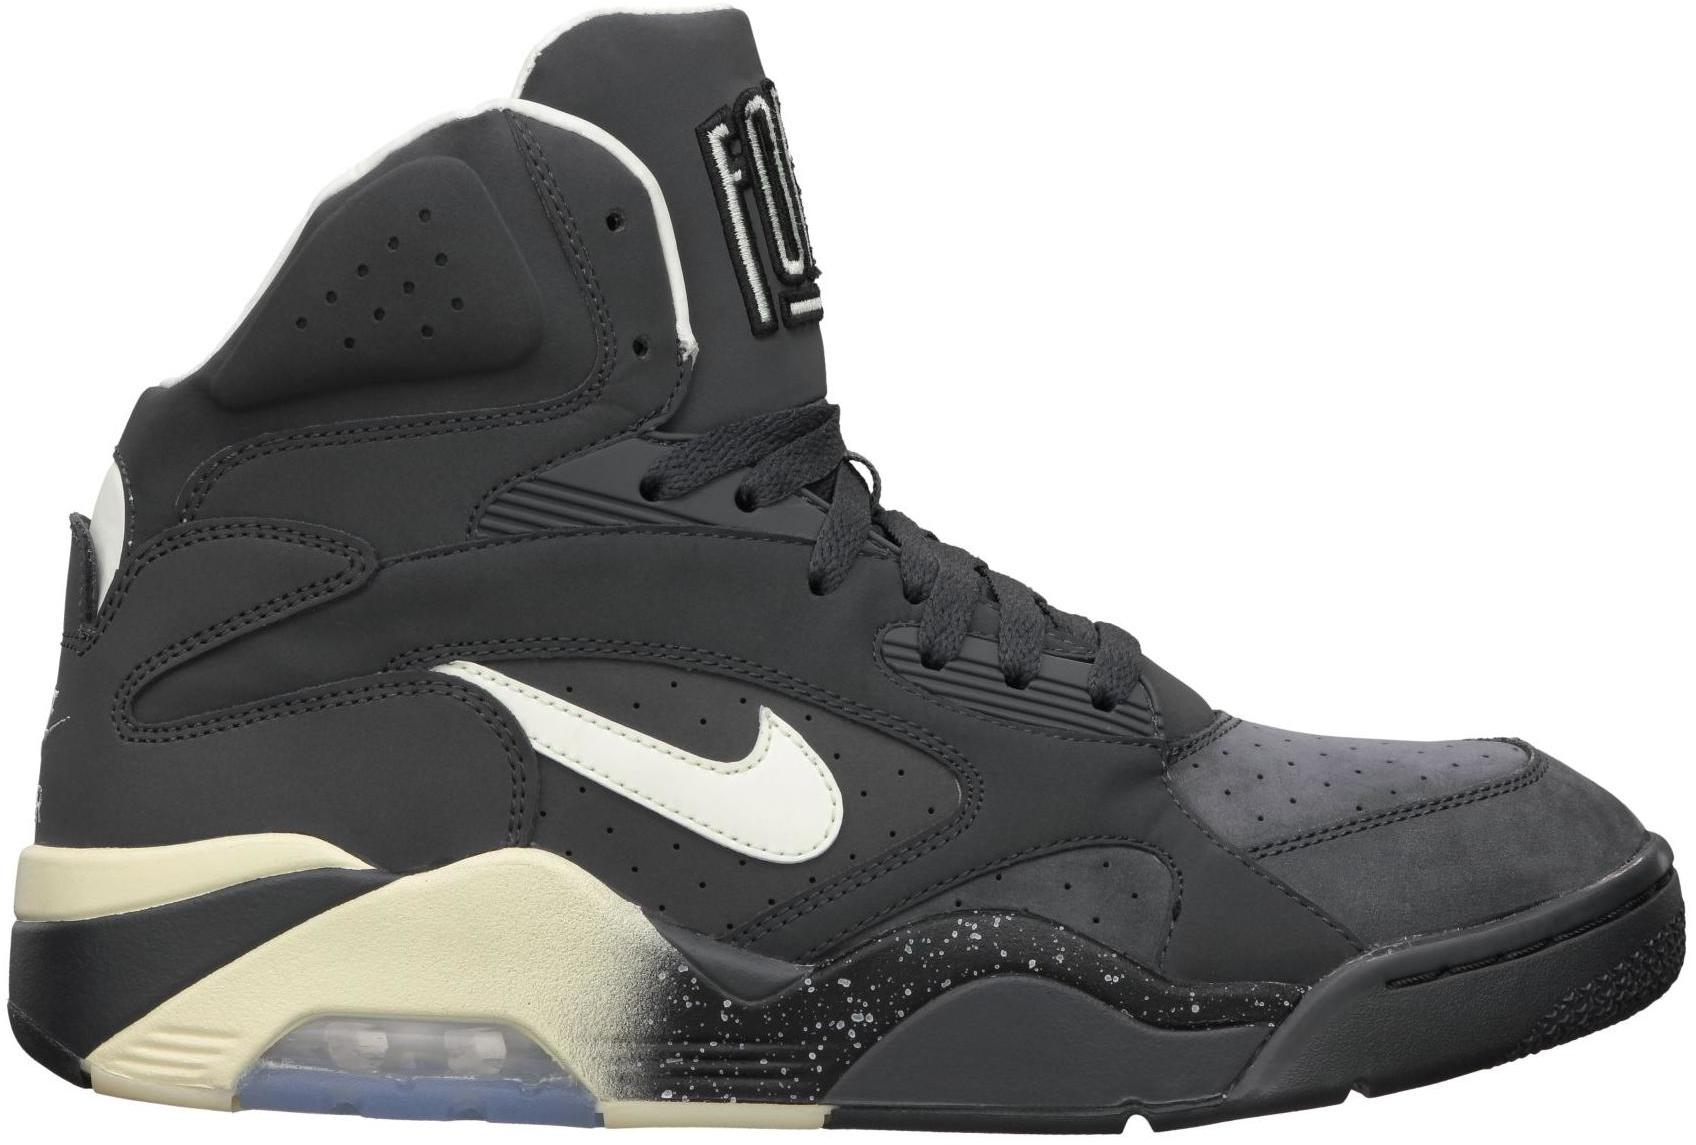 Nike Air Force 180 Glow In The Dark In Anthracite / Vibrant Yellow - Black